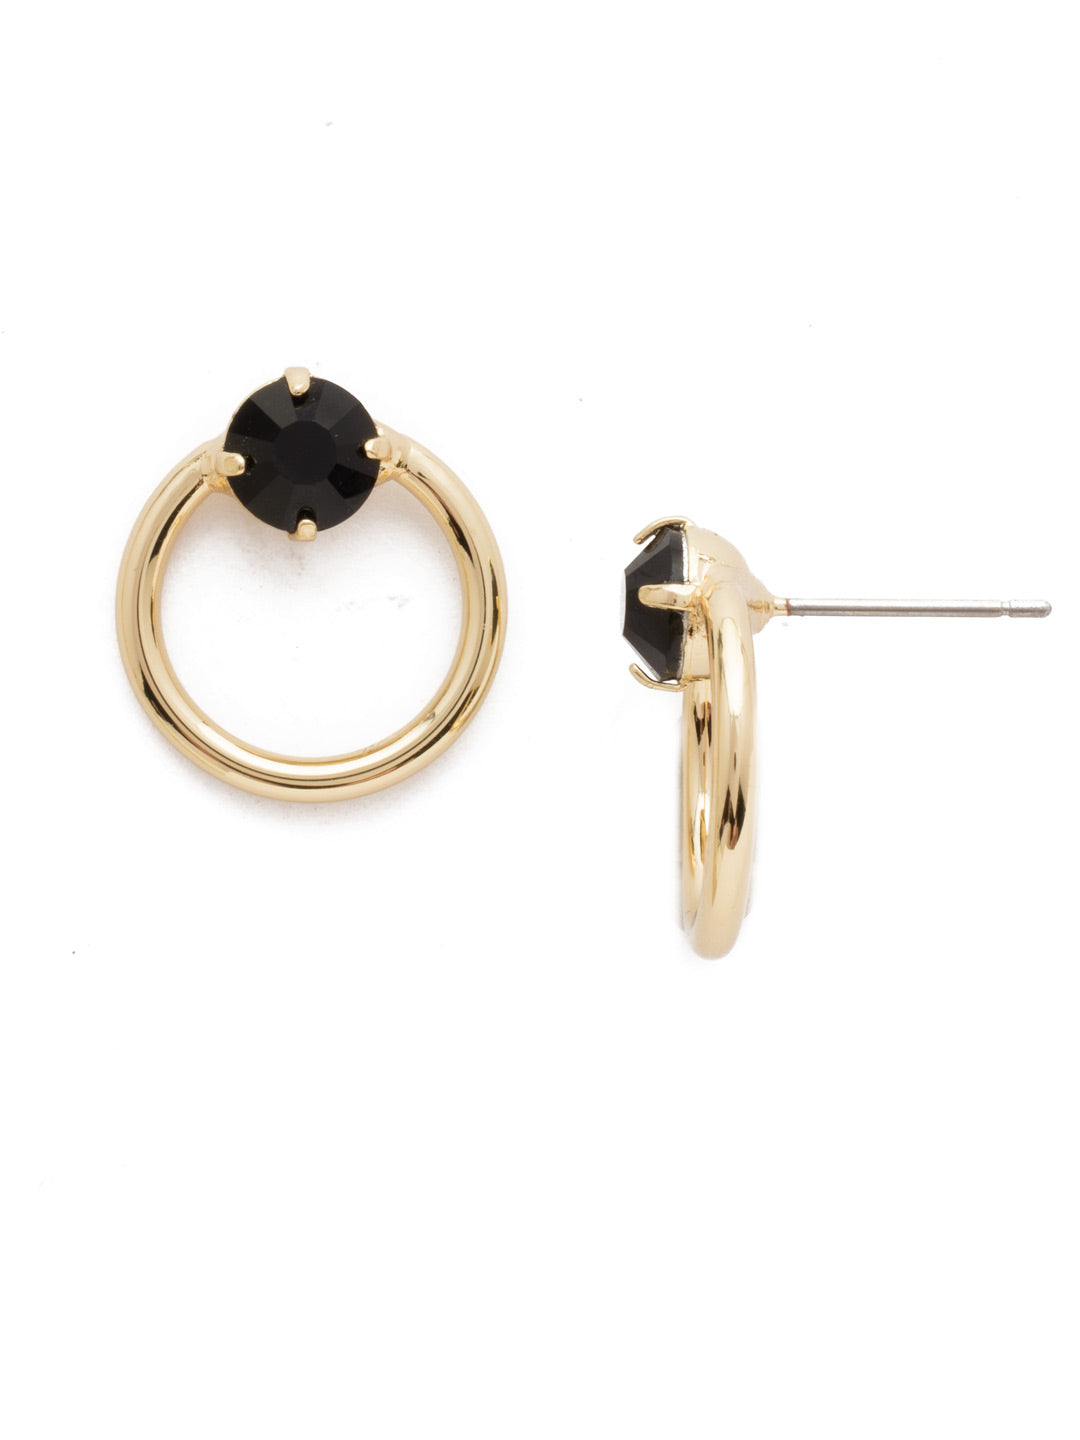 Circling the Middle Stud Earrings - EDW30BGJET